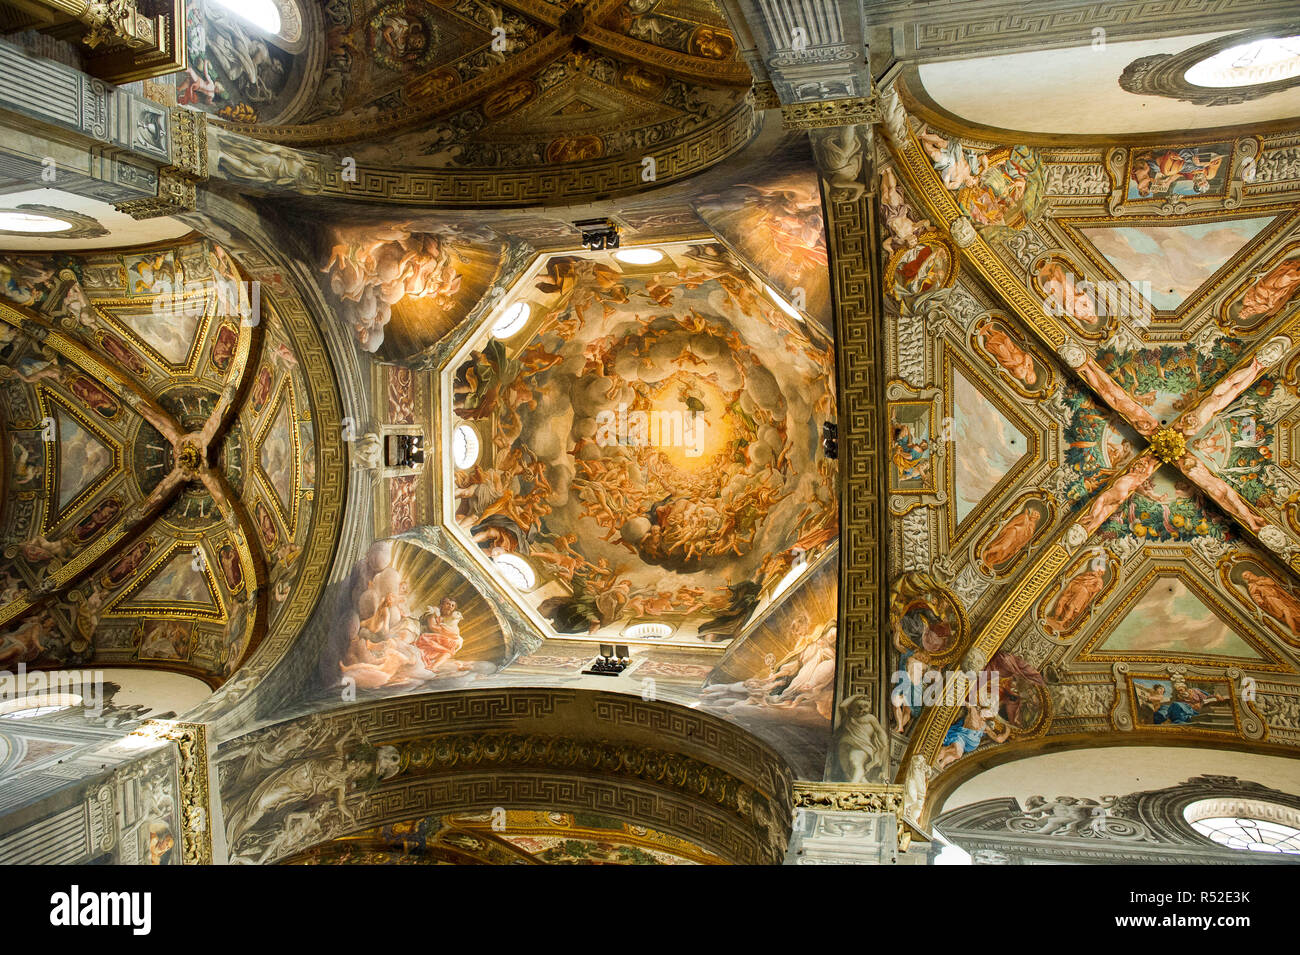 Italy, Emilia Romagna, Parma, Cathedral S. Maria Assunta, learned of the dome of the Assumption of the Virgin painted by Correggio - Stock Image